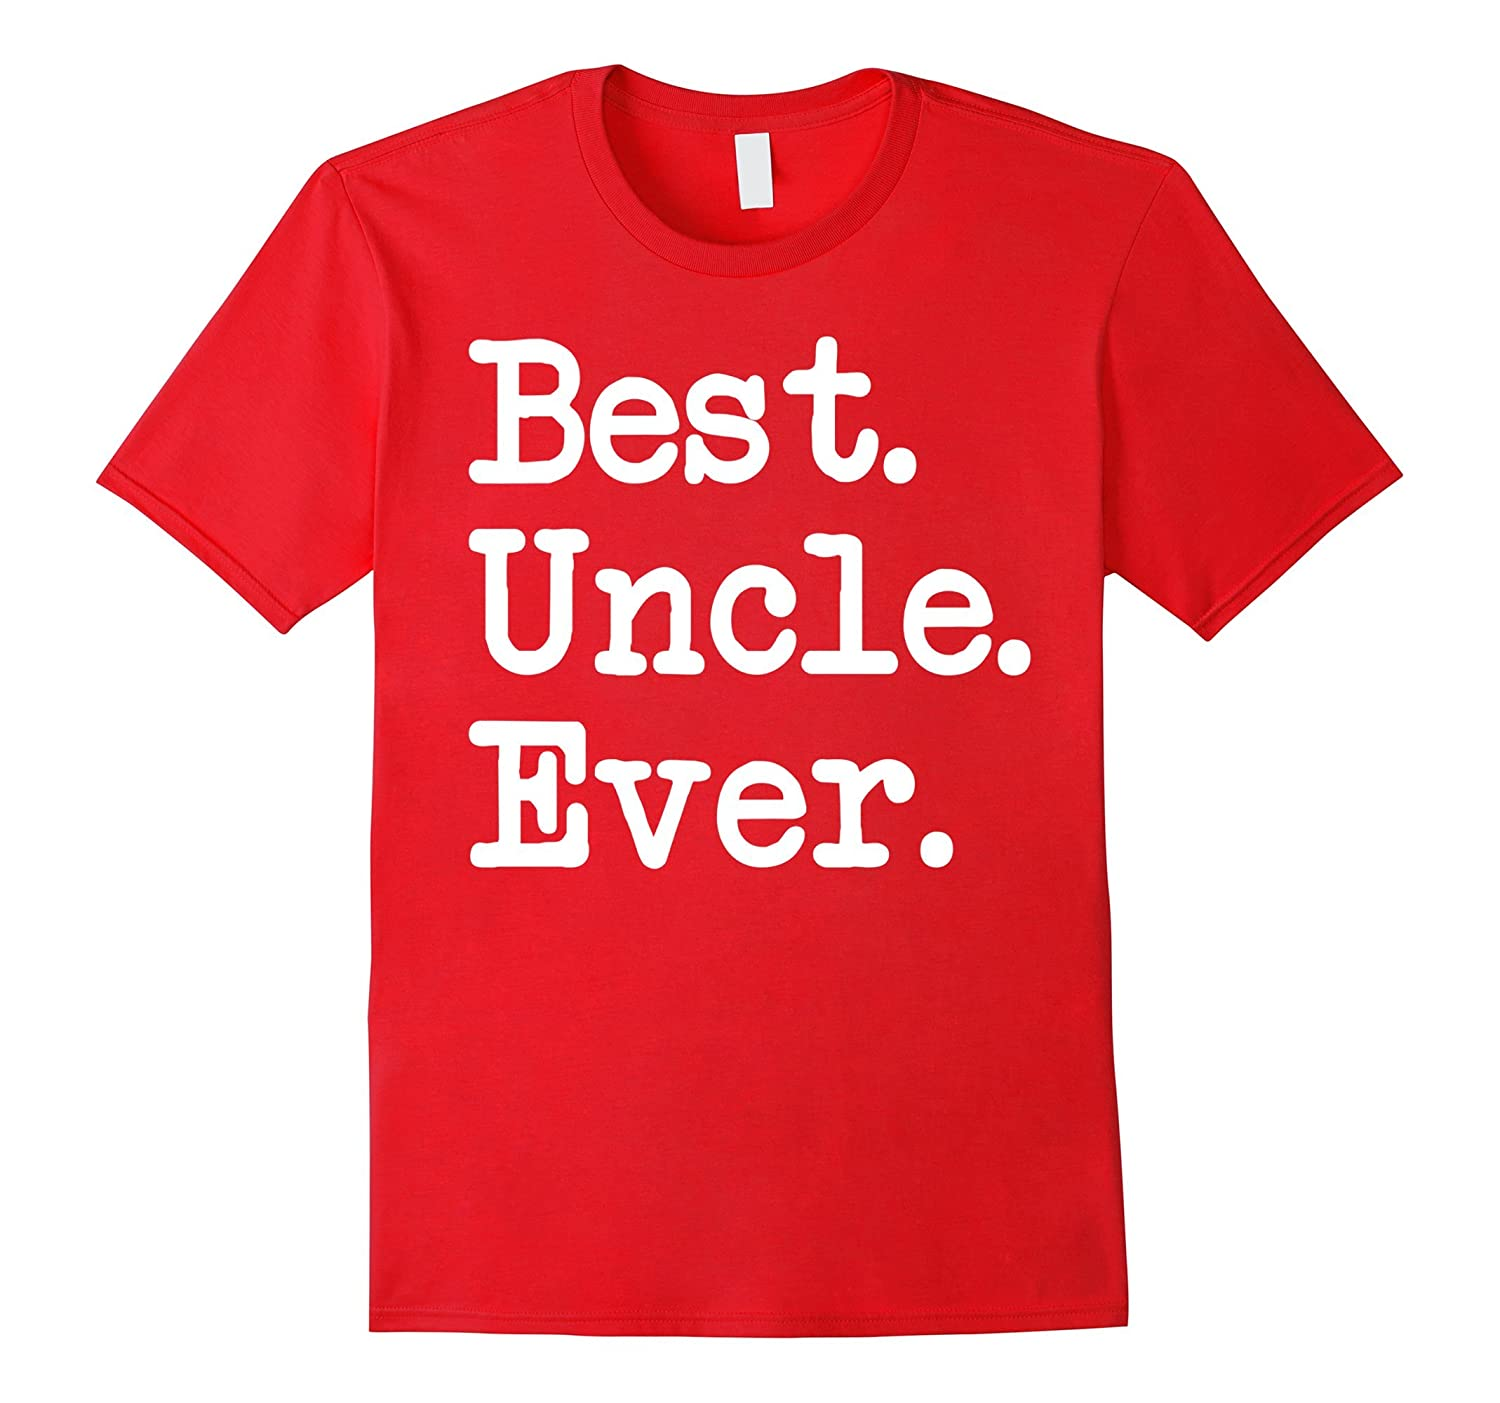 Best. Uncle. Ever. T-Shirt Great Gift For Favorite Uncle-Art